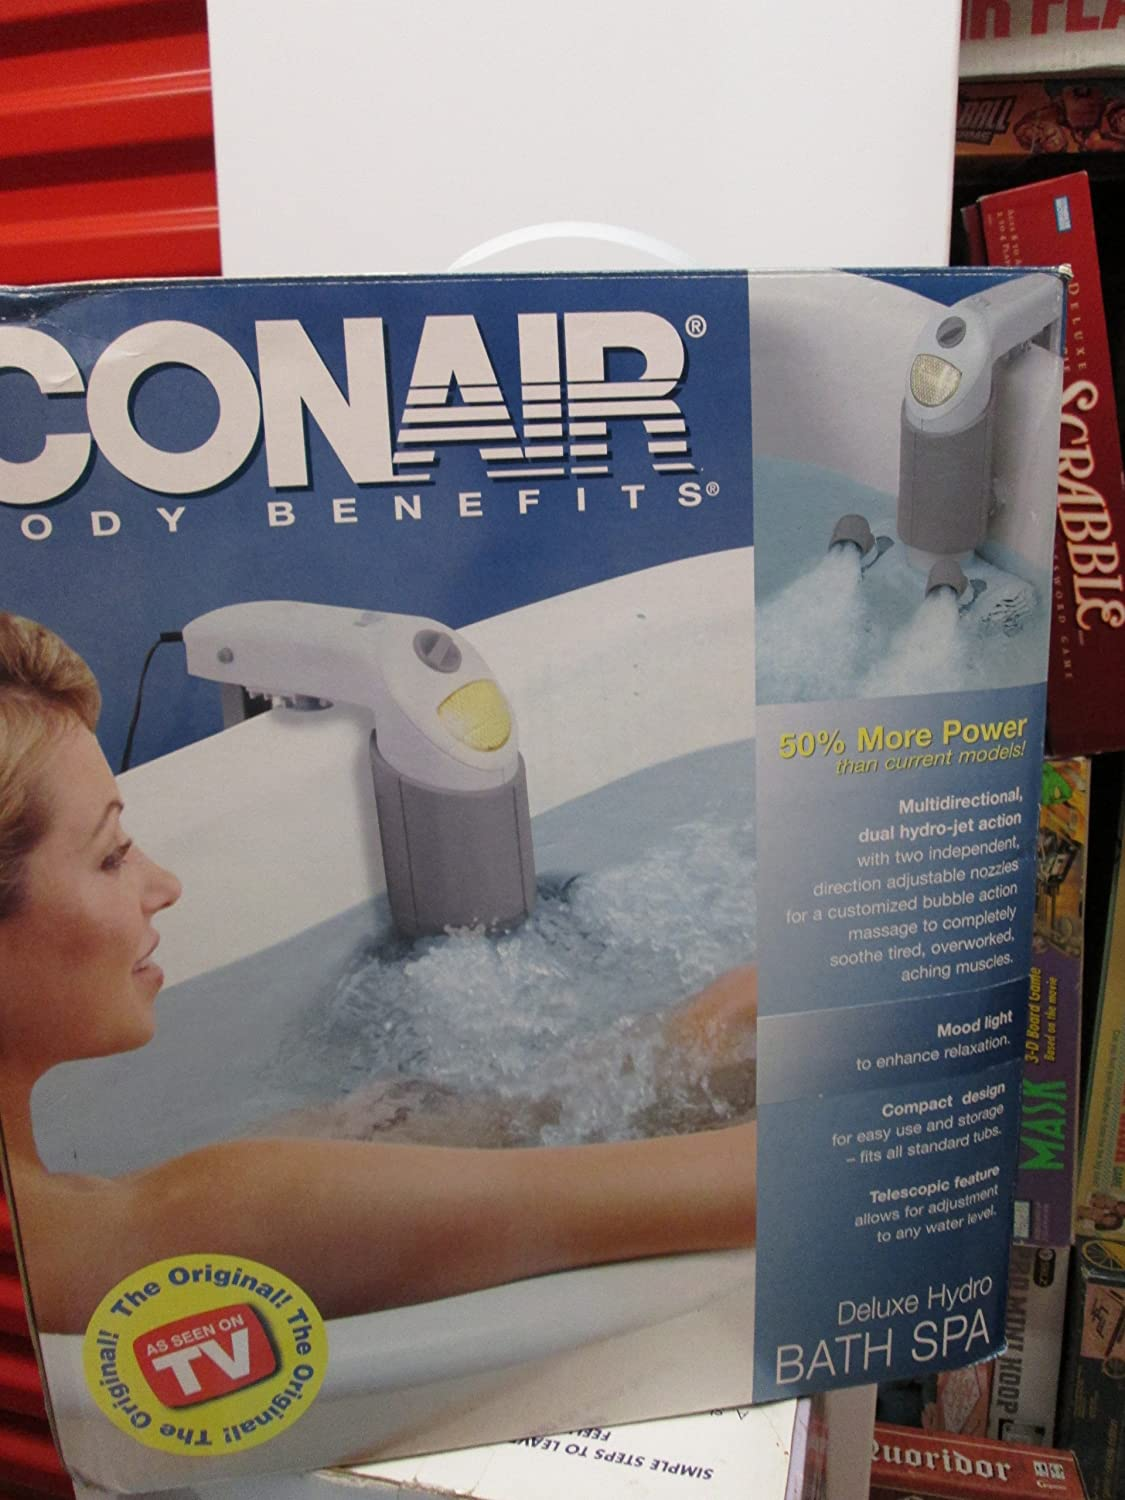 Amazon.com: Conair Body Benefits Deluxe Hydro Bath Spa: Health ...